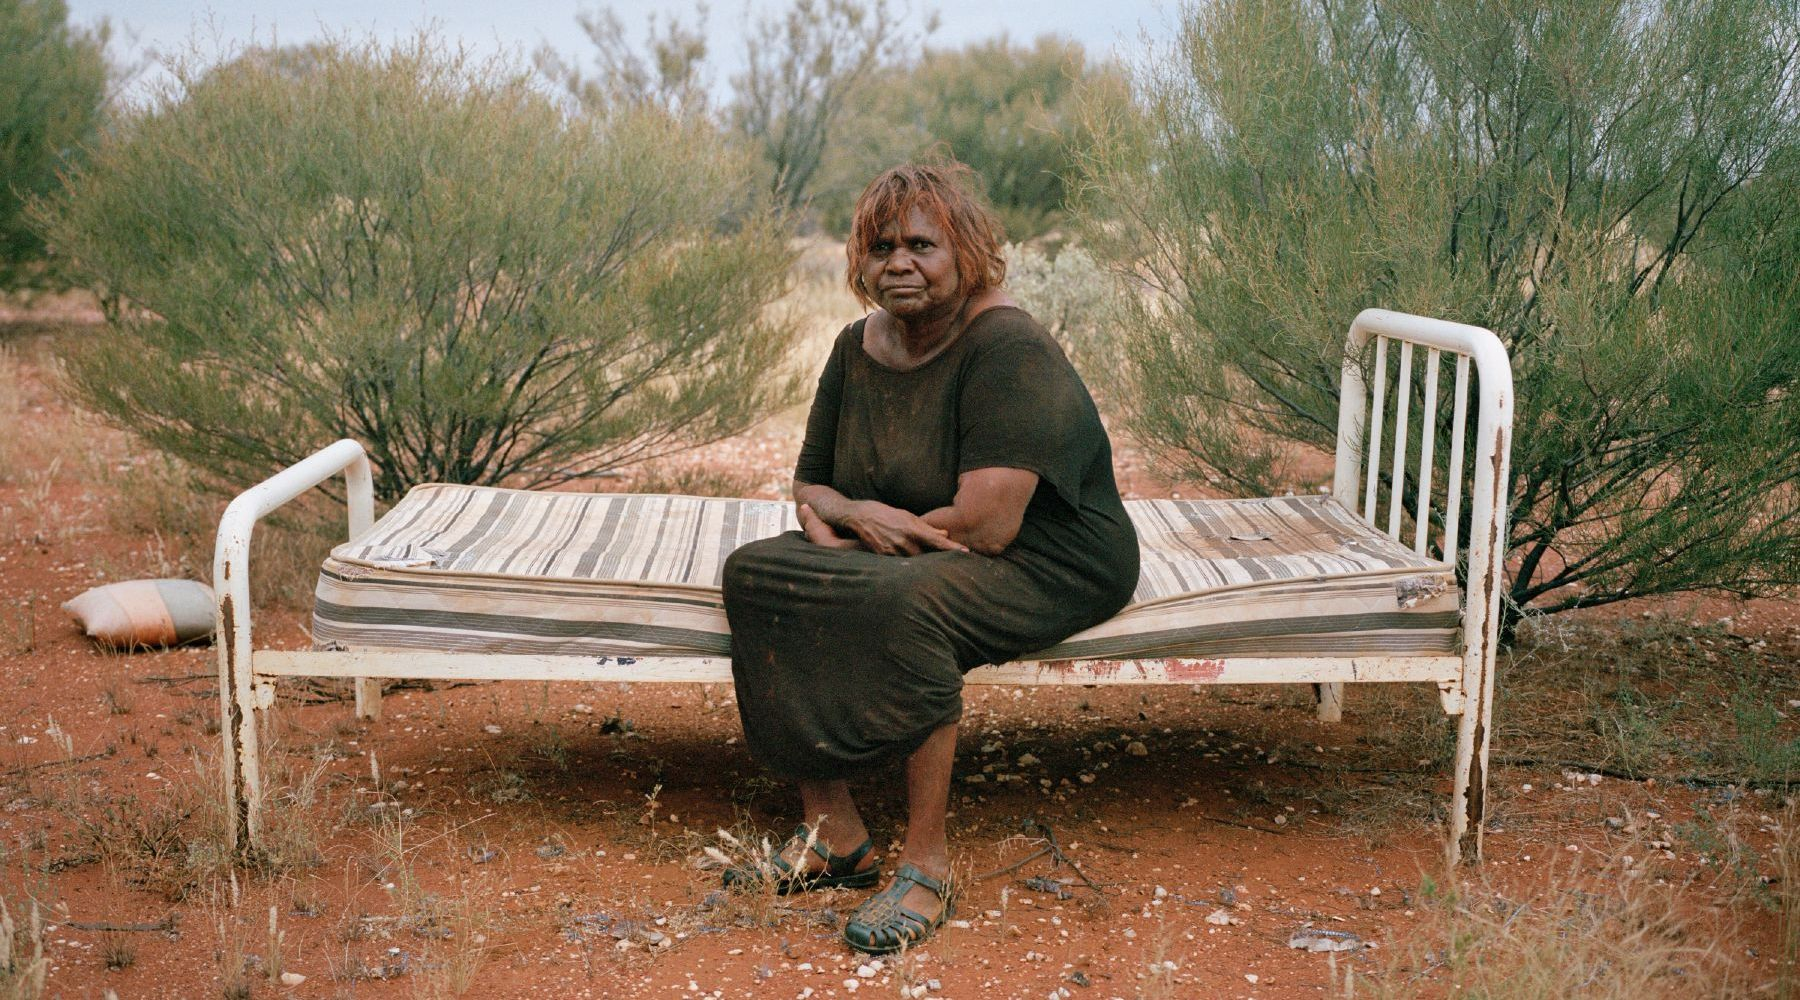 Big Sky: Portraits from the Outback